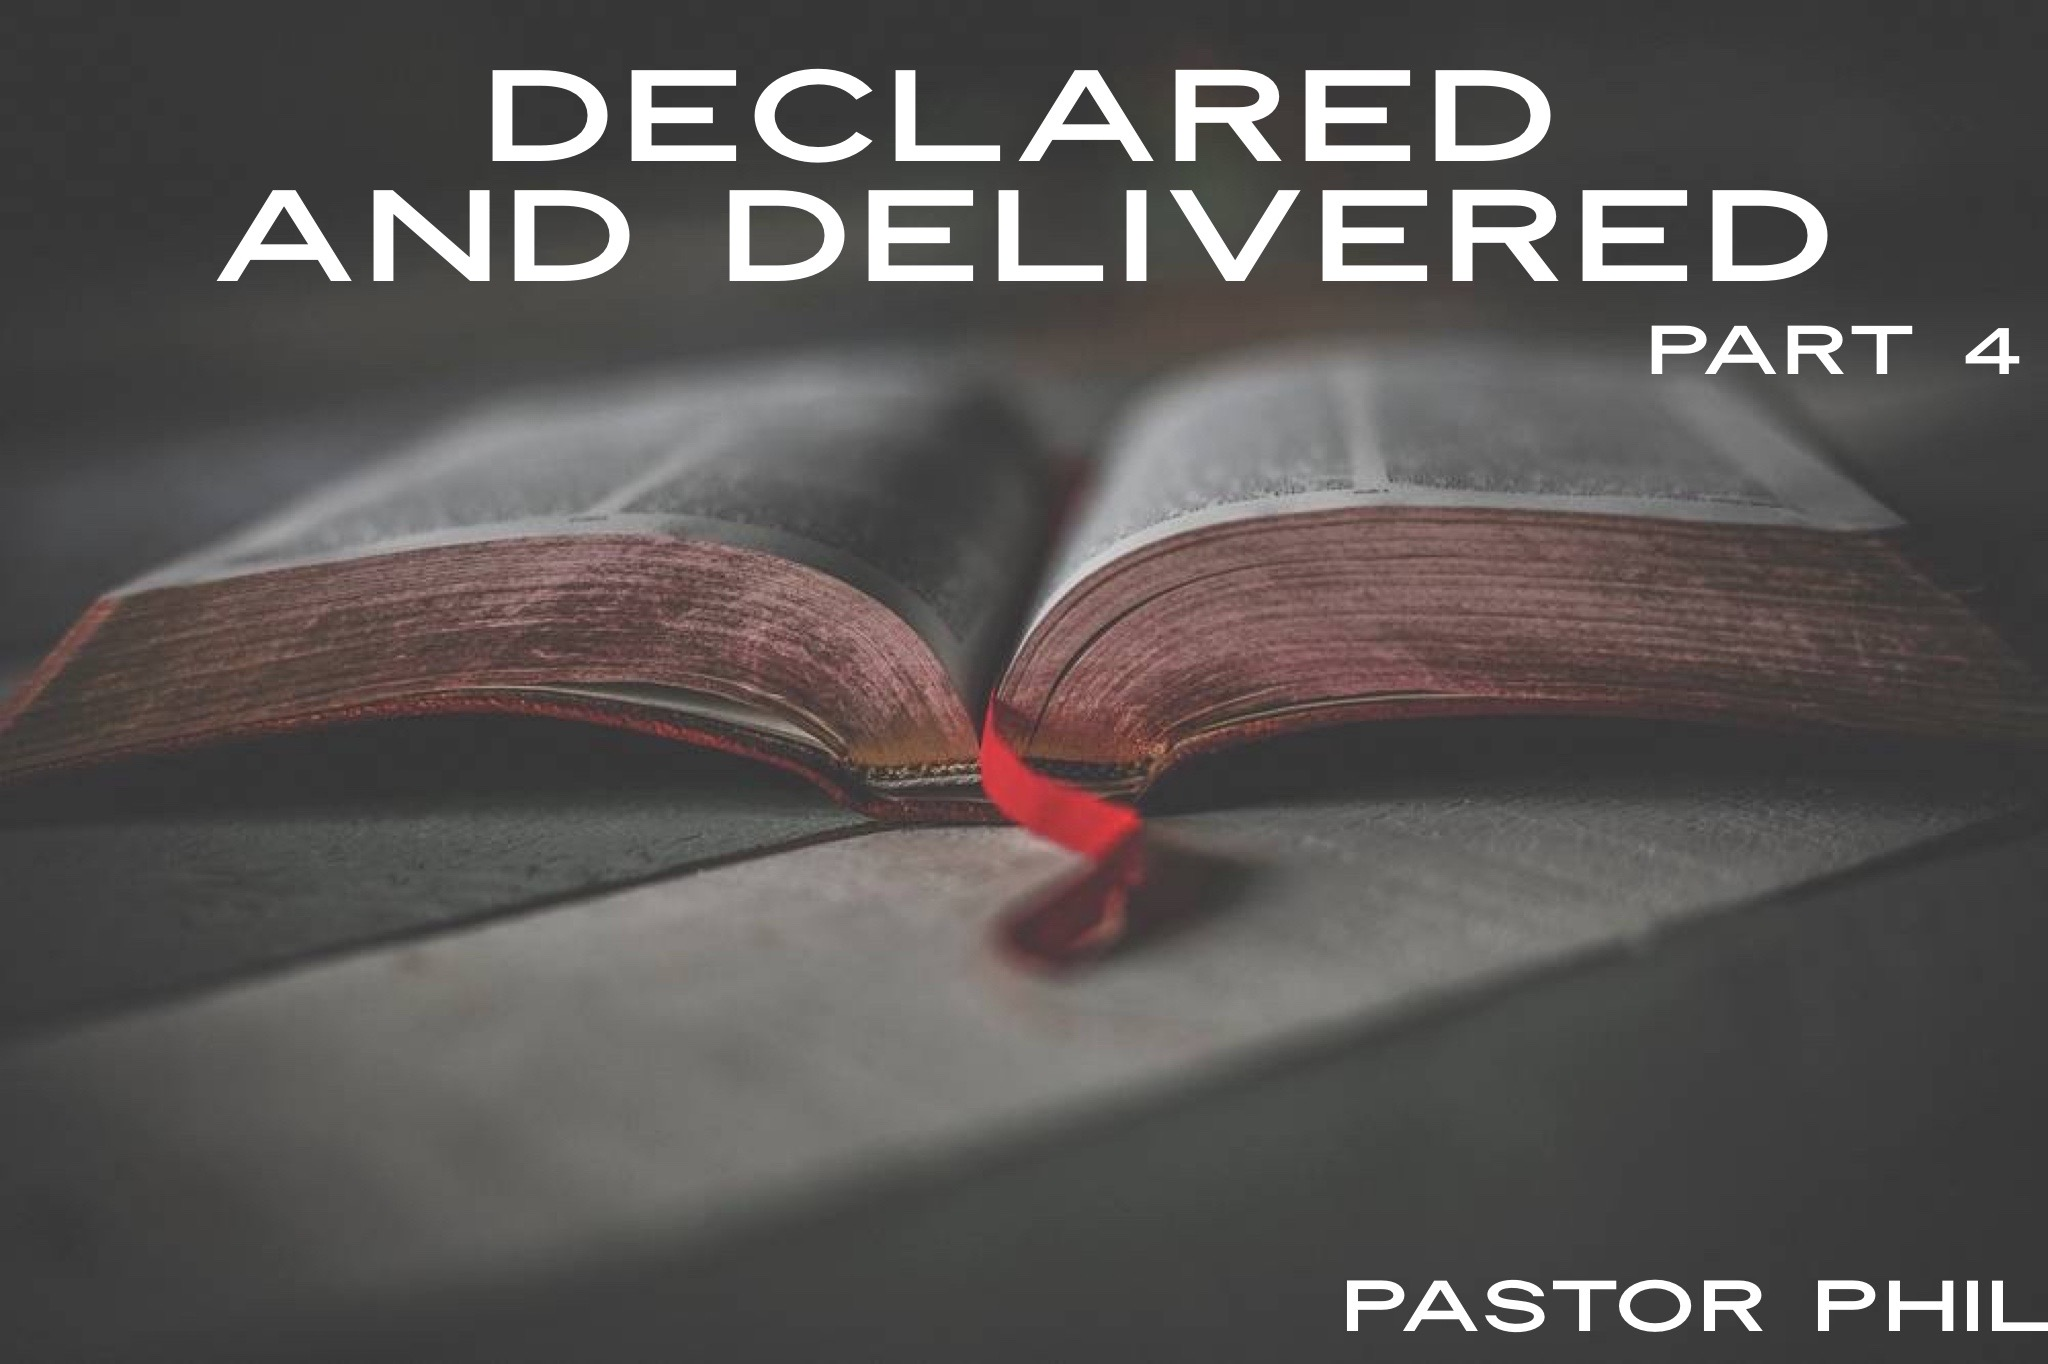 Declared and Delivered Pt 4